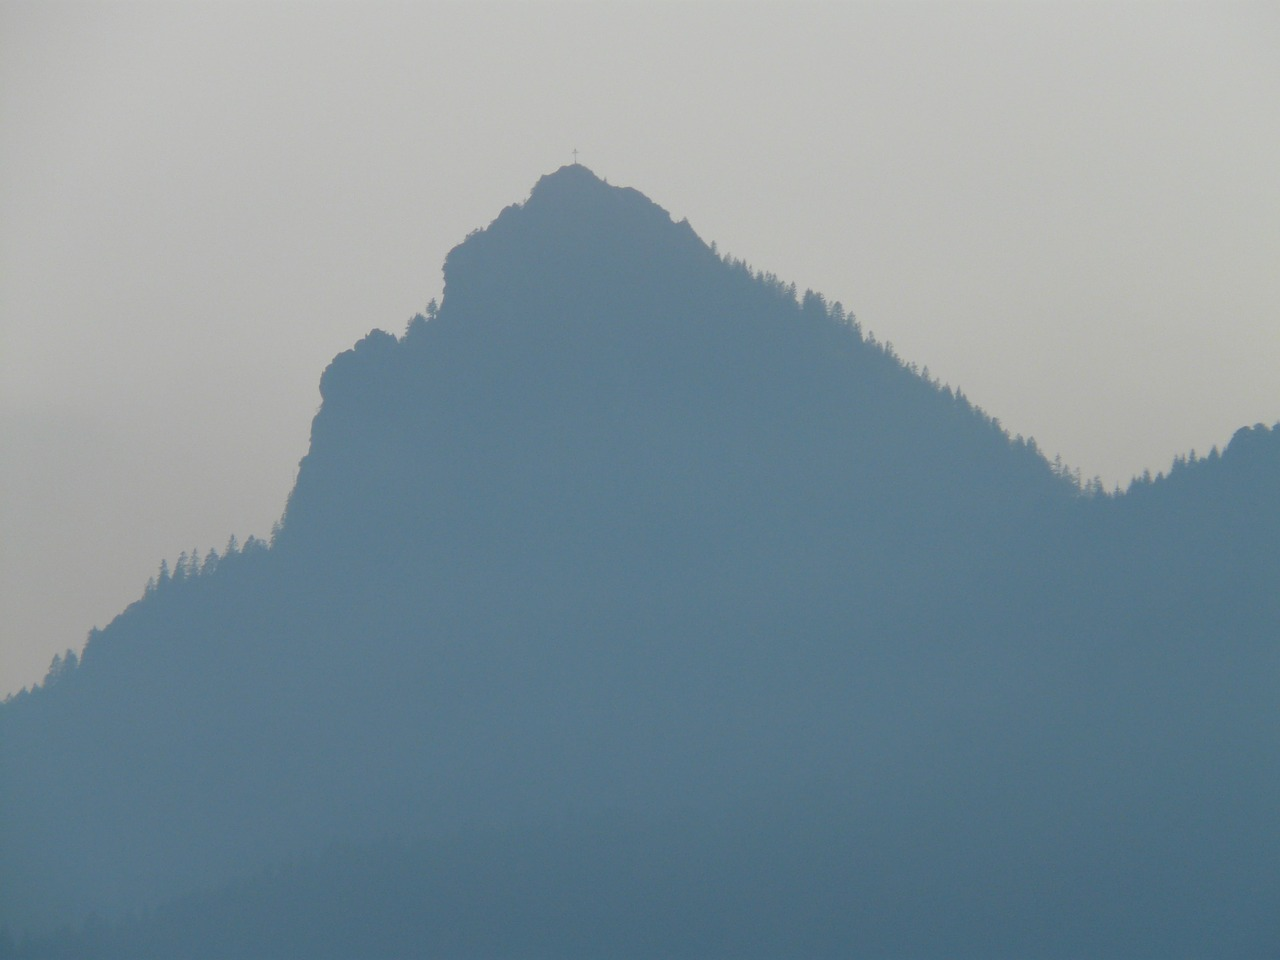 mountain,back light,haze,fog,ridge,summit,great,blue,free pictures, free photos, free images, royalty free, free illustrations, public domain